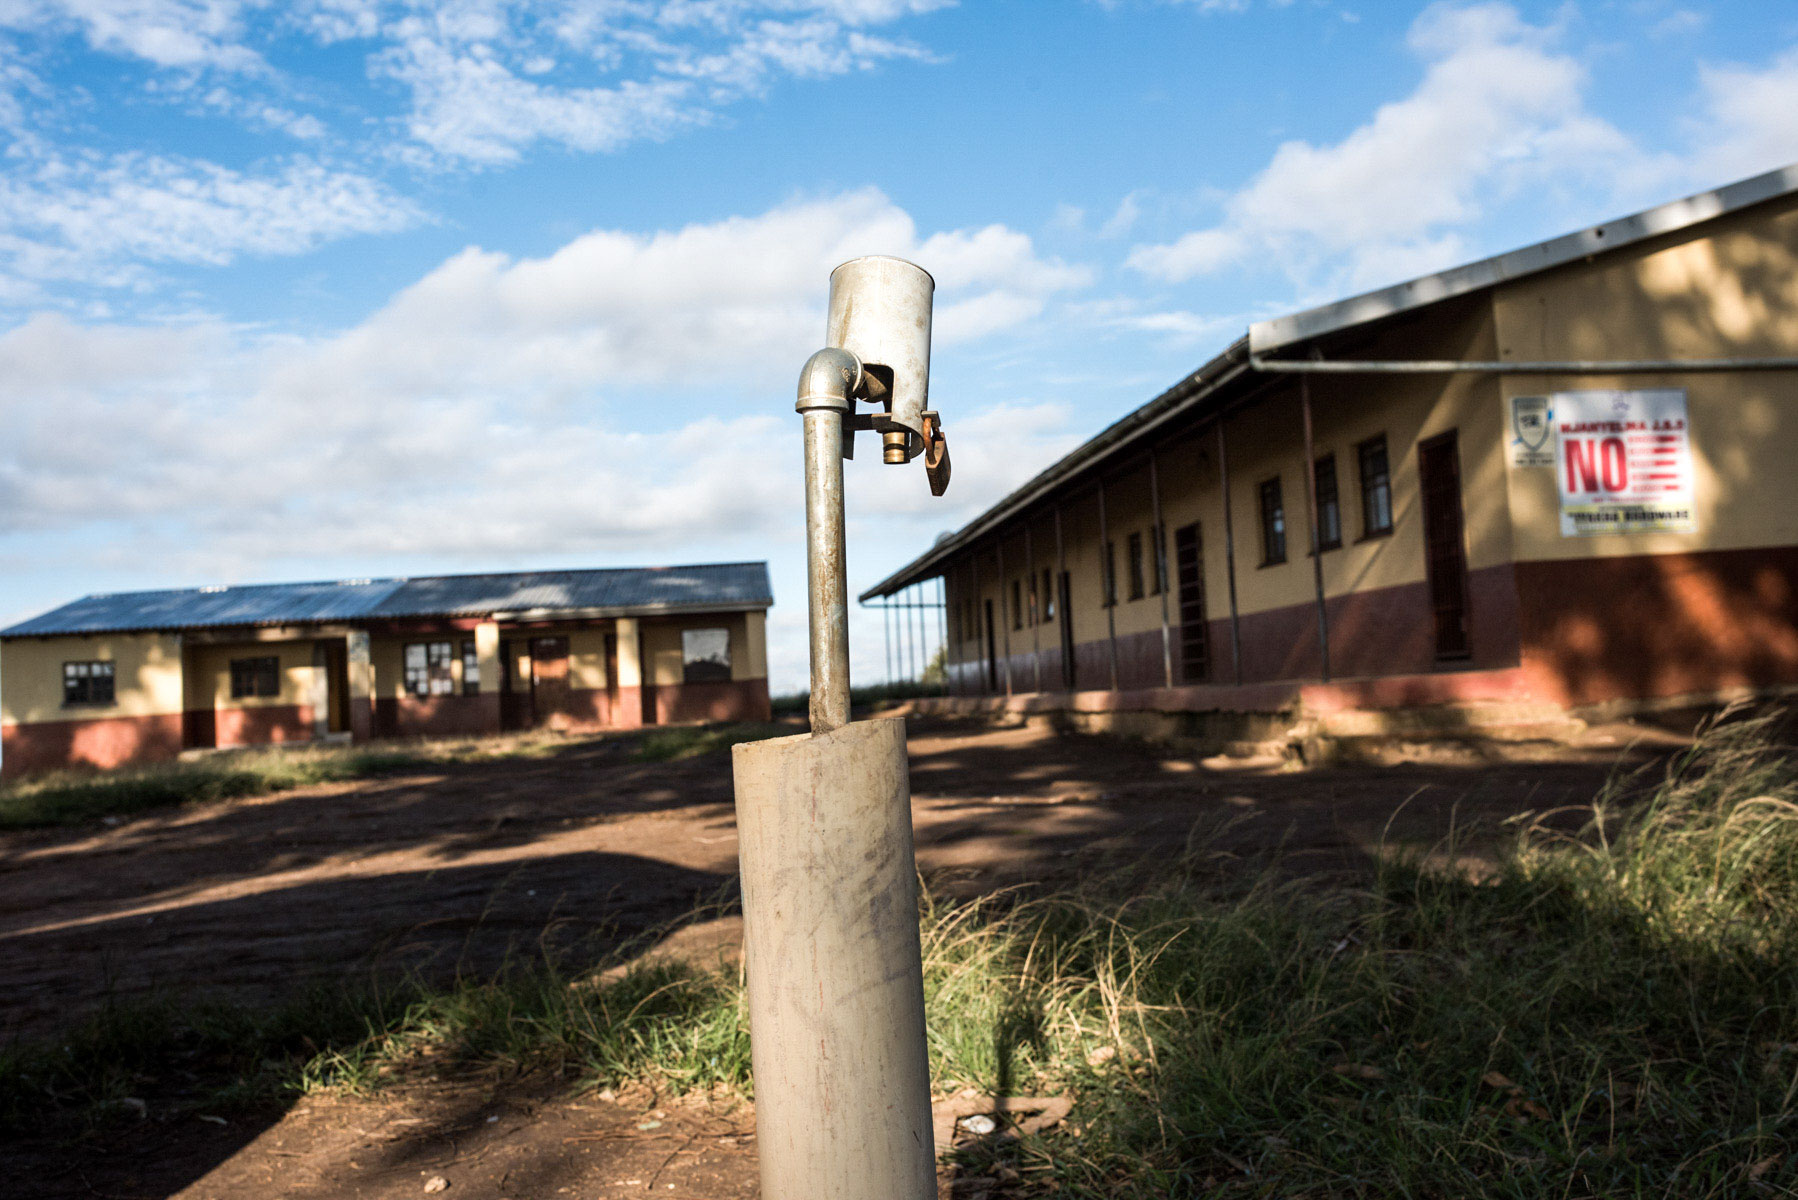 12 April 2018: A single tap is the only source of water for Mjanyelwa Junior Secondary School in the Eastern Cape.